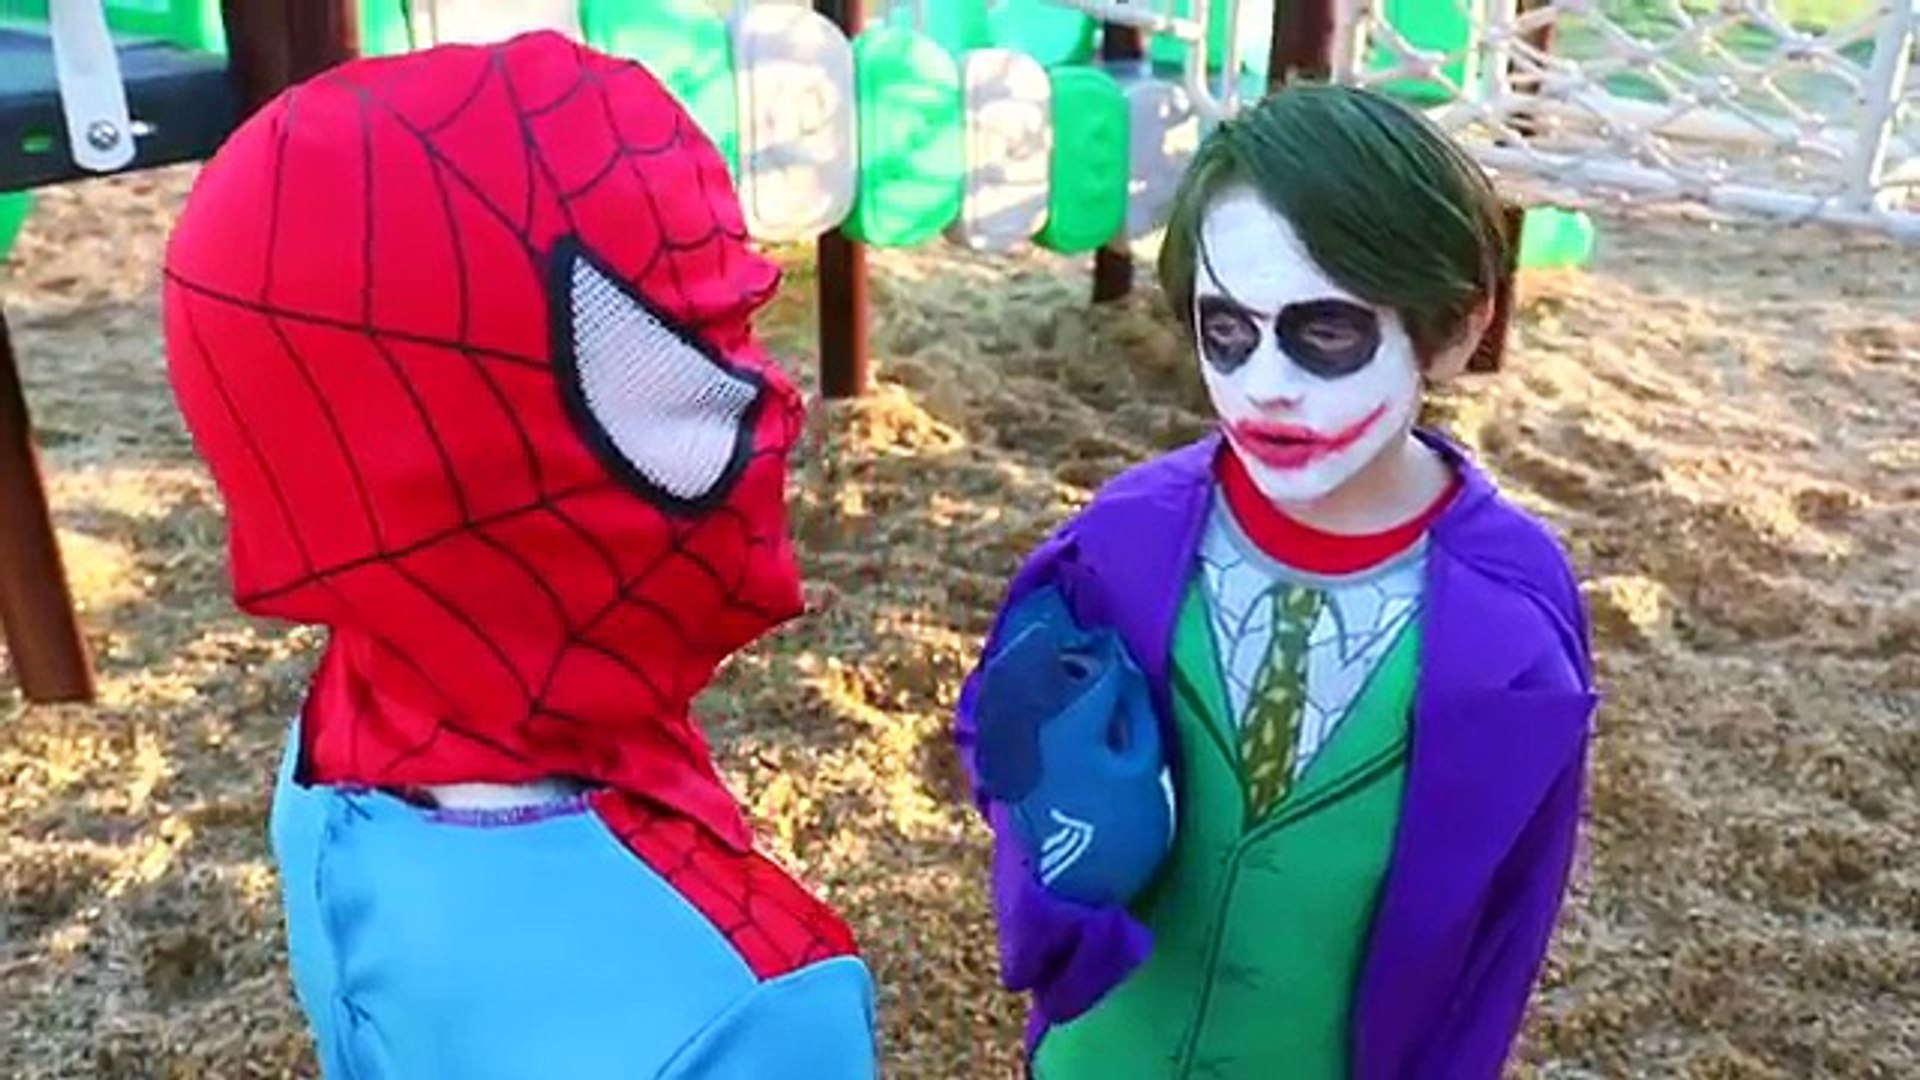 Little Heroes The Joker Vs Spiderman Captain America In Real Life Superhero Battle 動画 Dailymotion